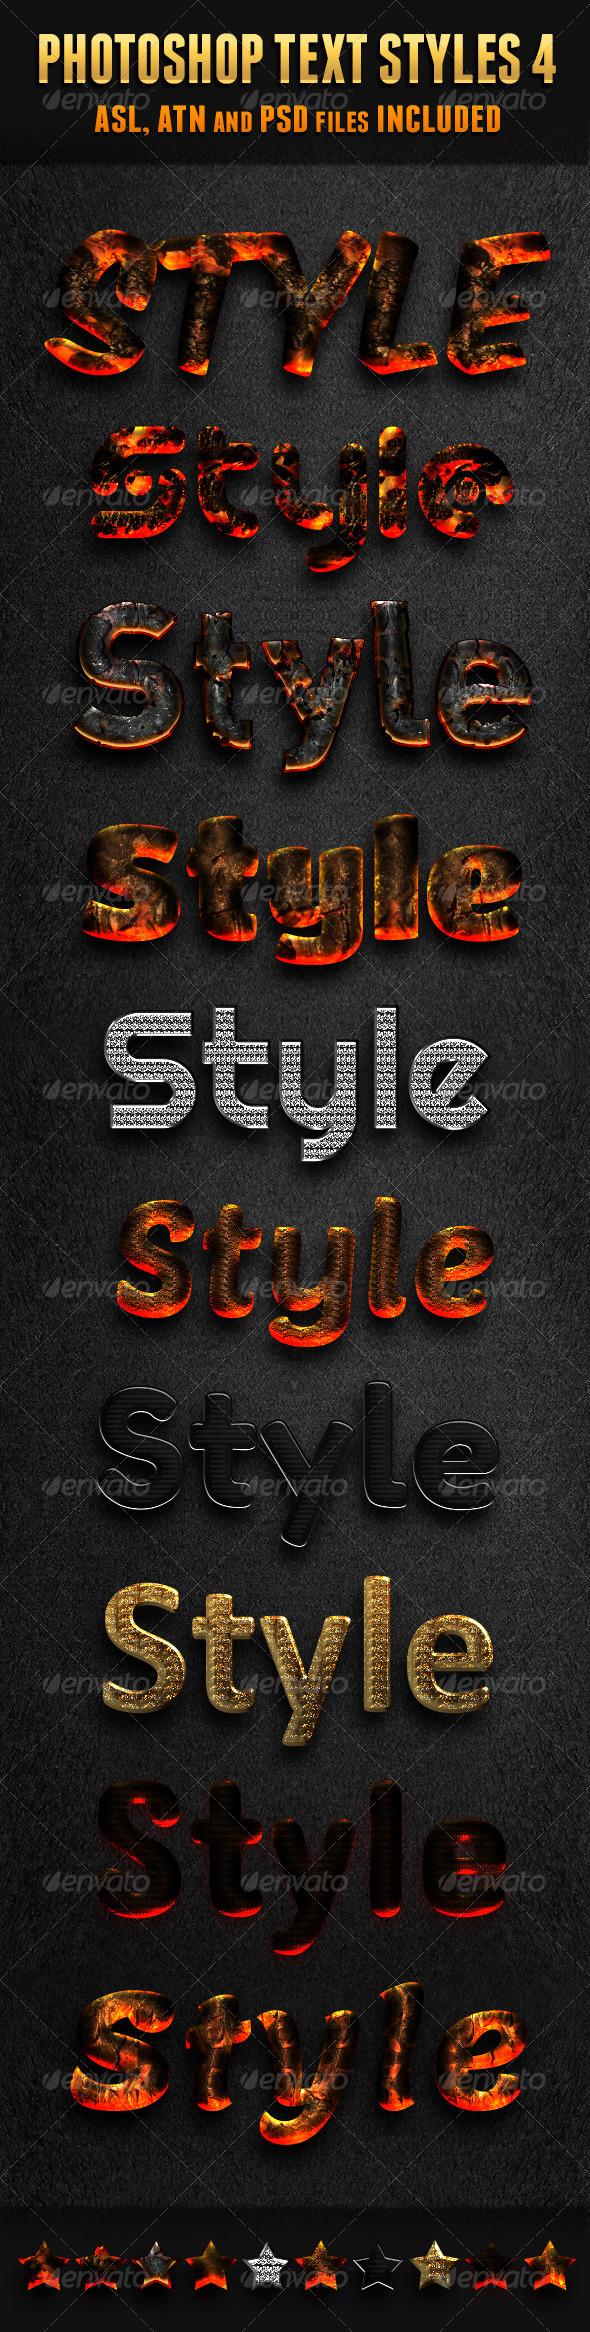 GraphicRiver Photoshop Text Styles 4 5988965